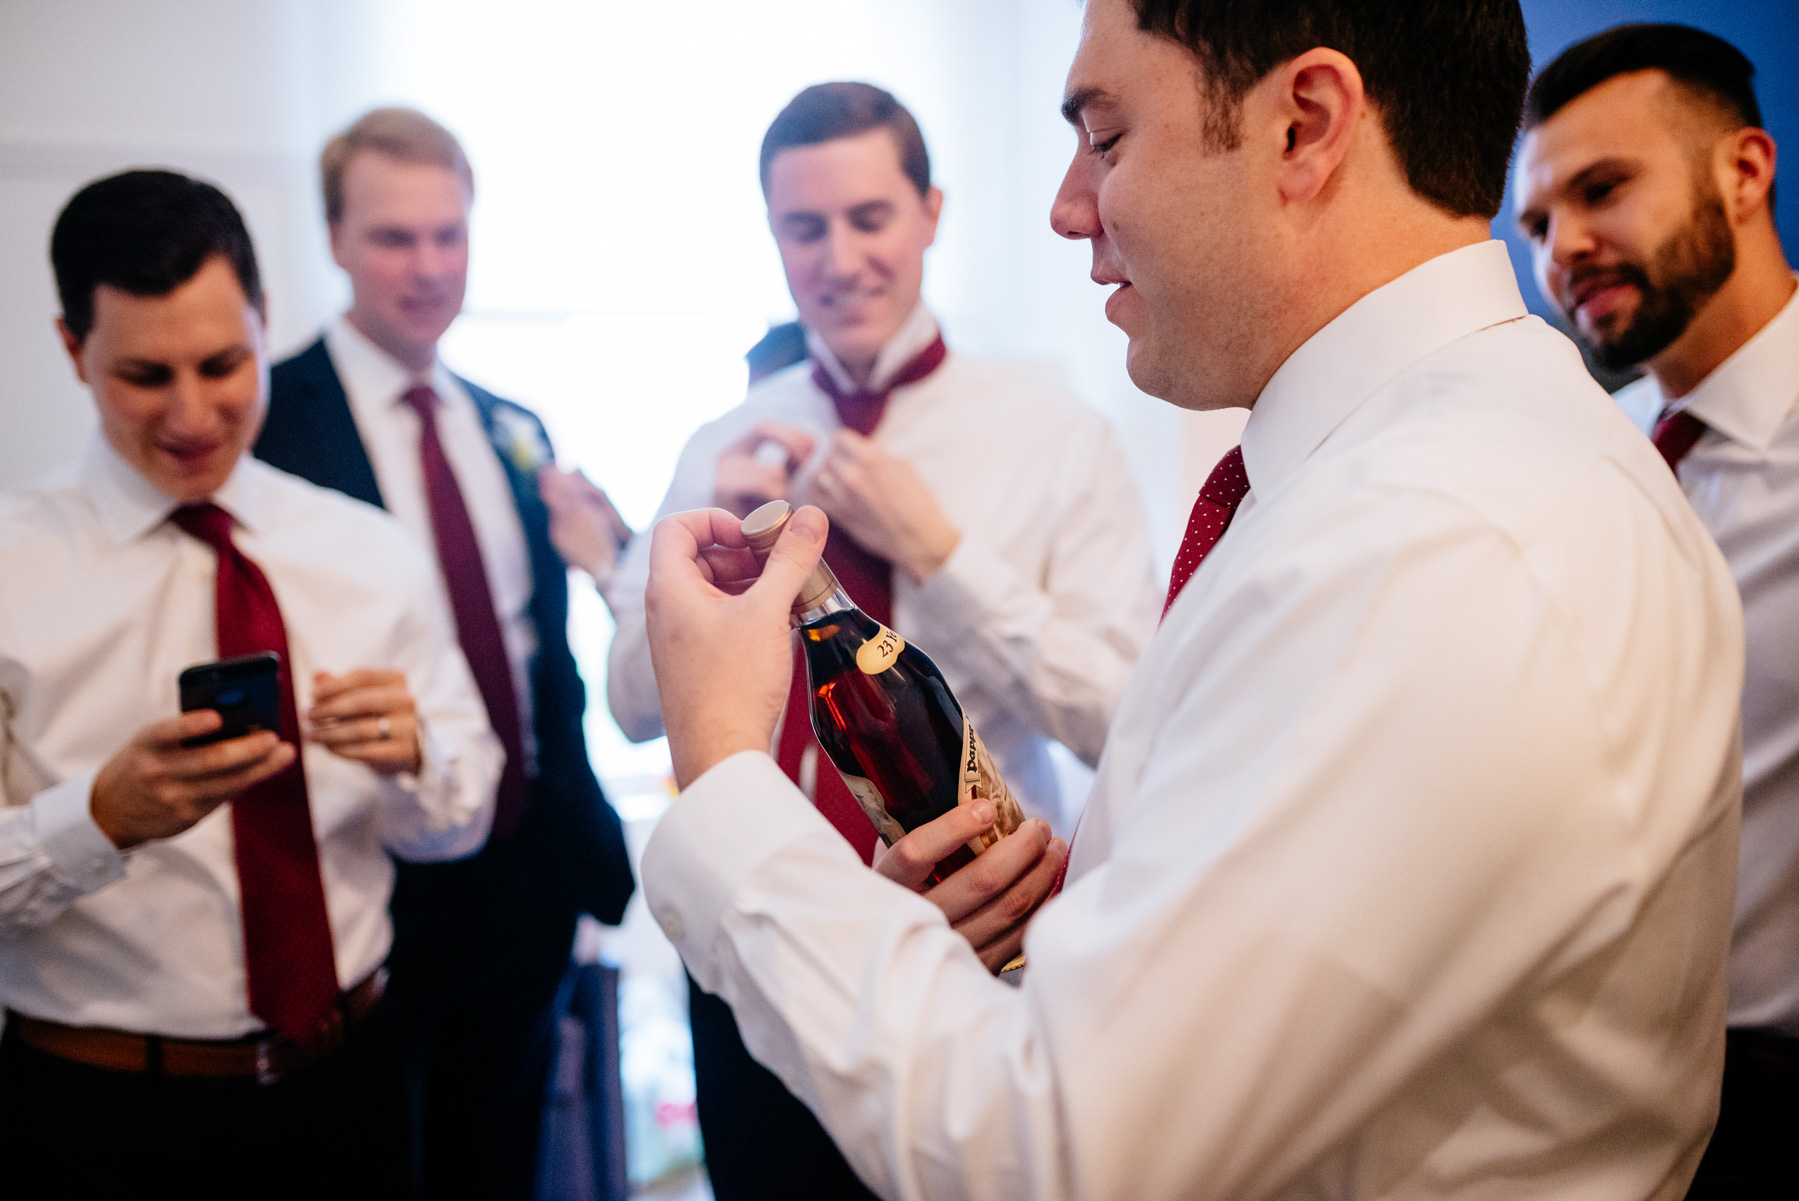 groom opening bottle of pappy whiskey